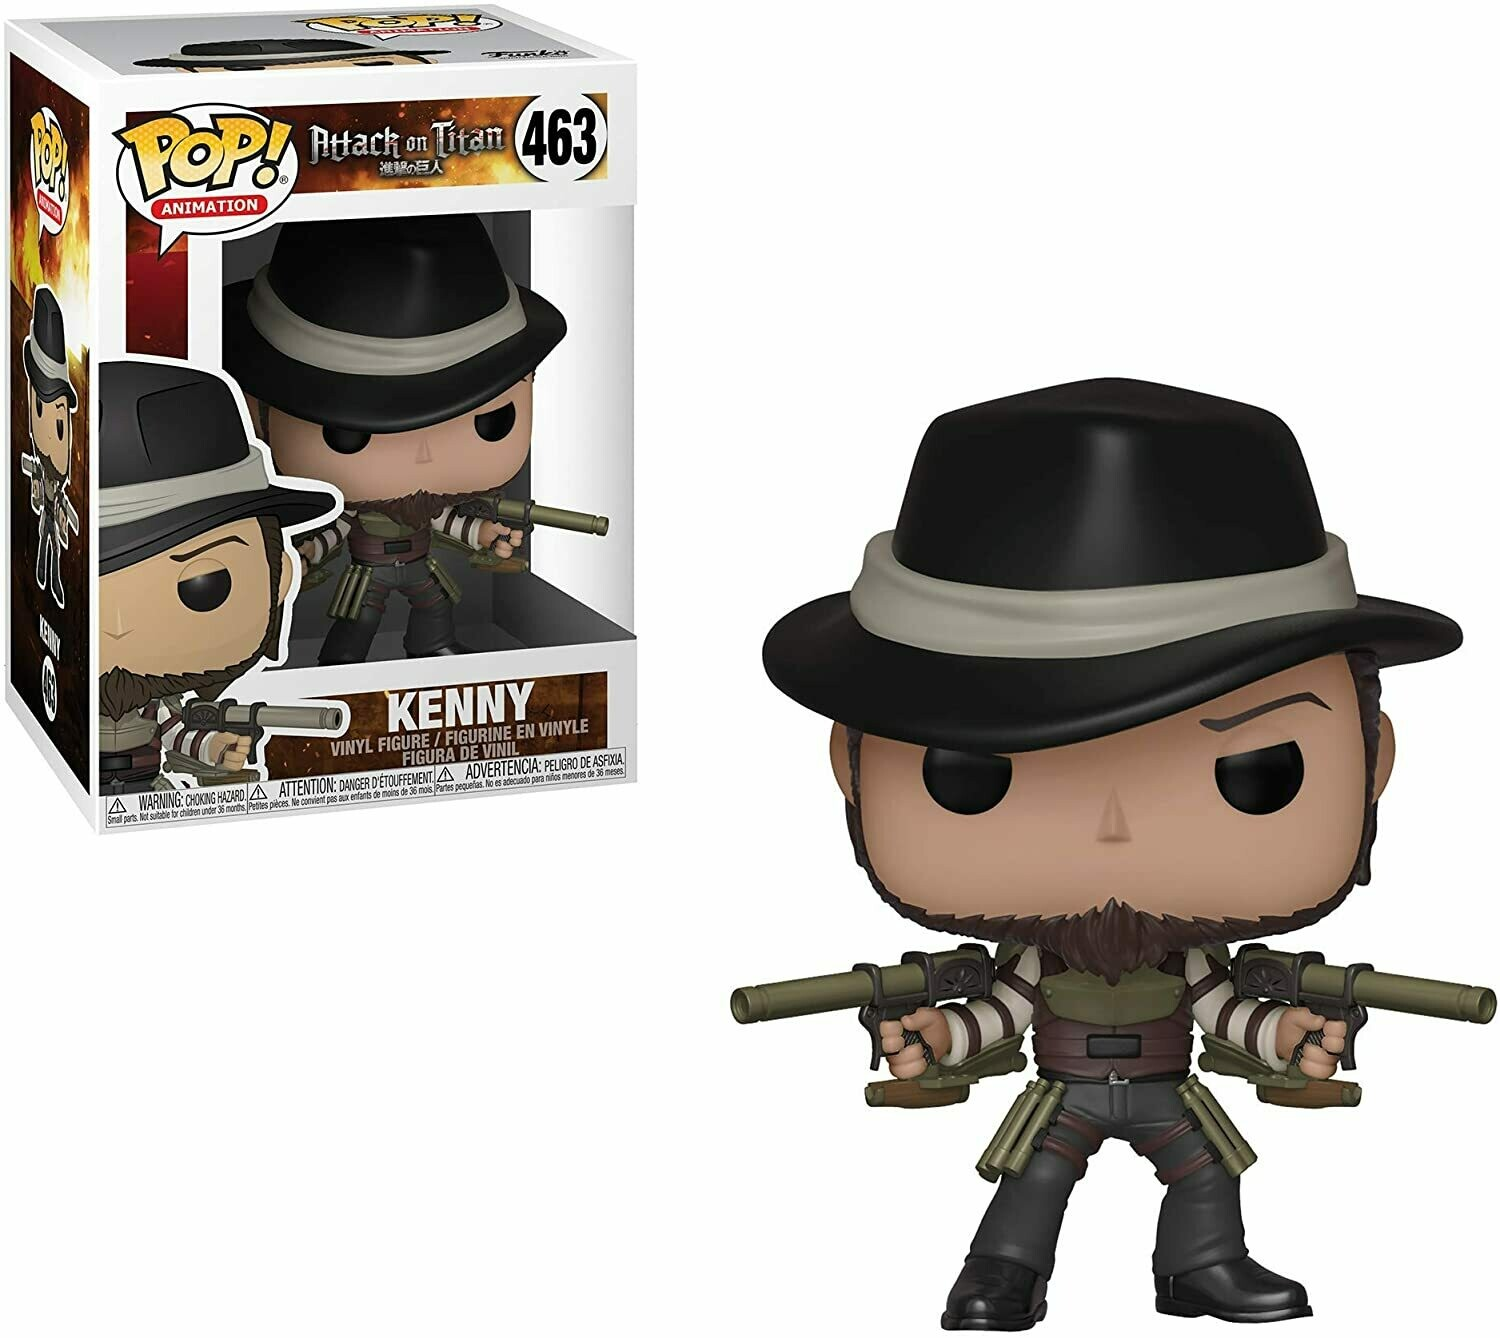 Funko Pop! Kenny - Attack On Titan